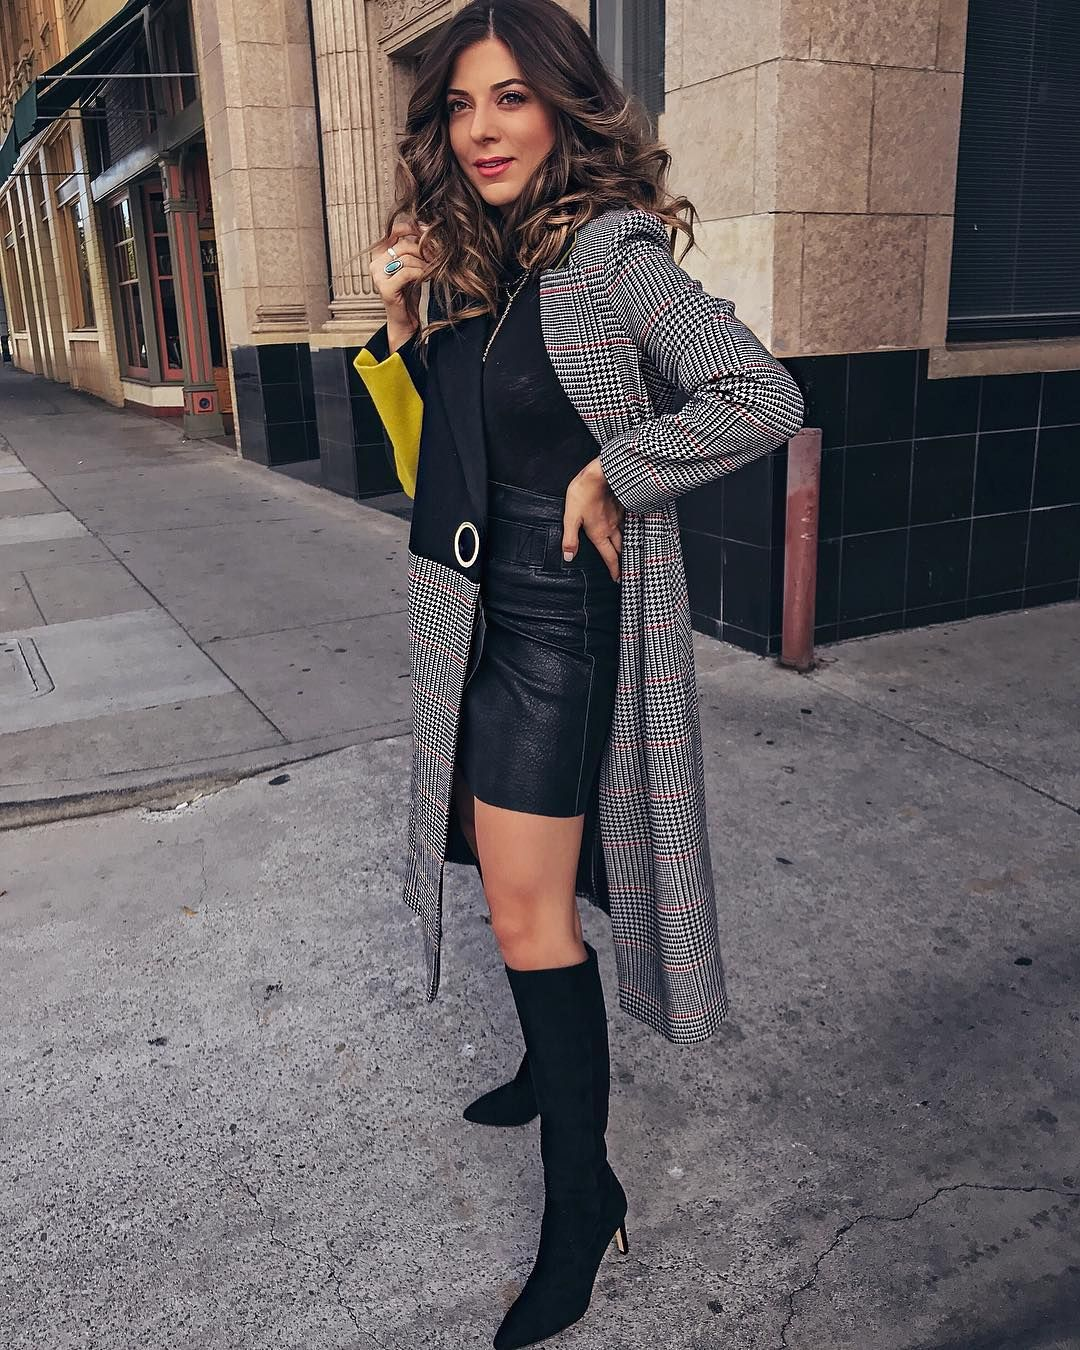 Lillian B Aka Studs Sapphires Rocking Our Olencia Heeled Boot Black Knee High Boots Outfit High Knee Boots Outfit Sam Edelman Boots